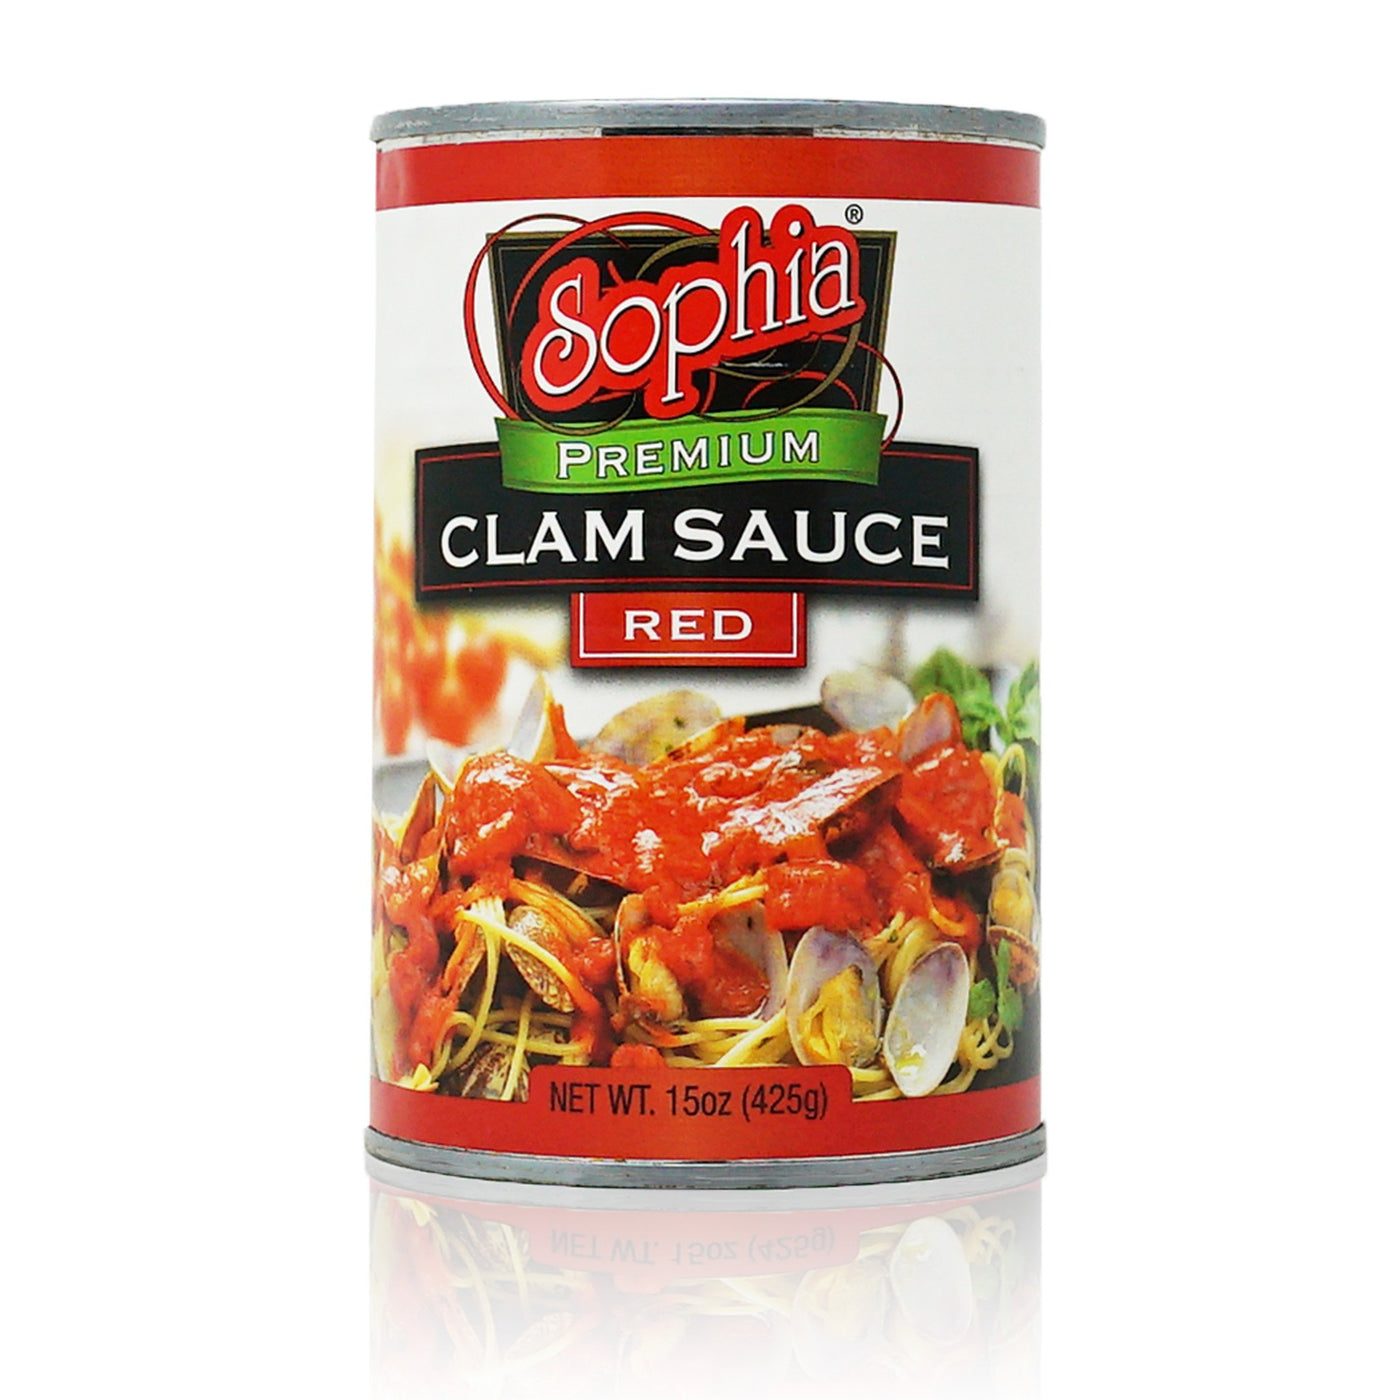 Sophia Clam Sauce - Red